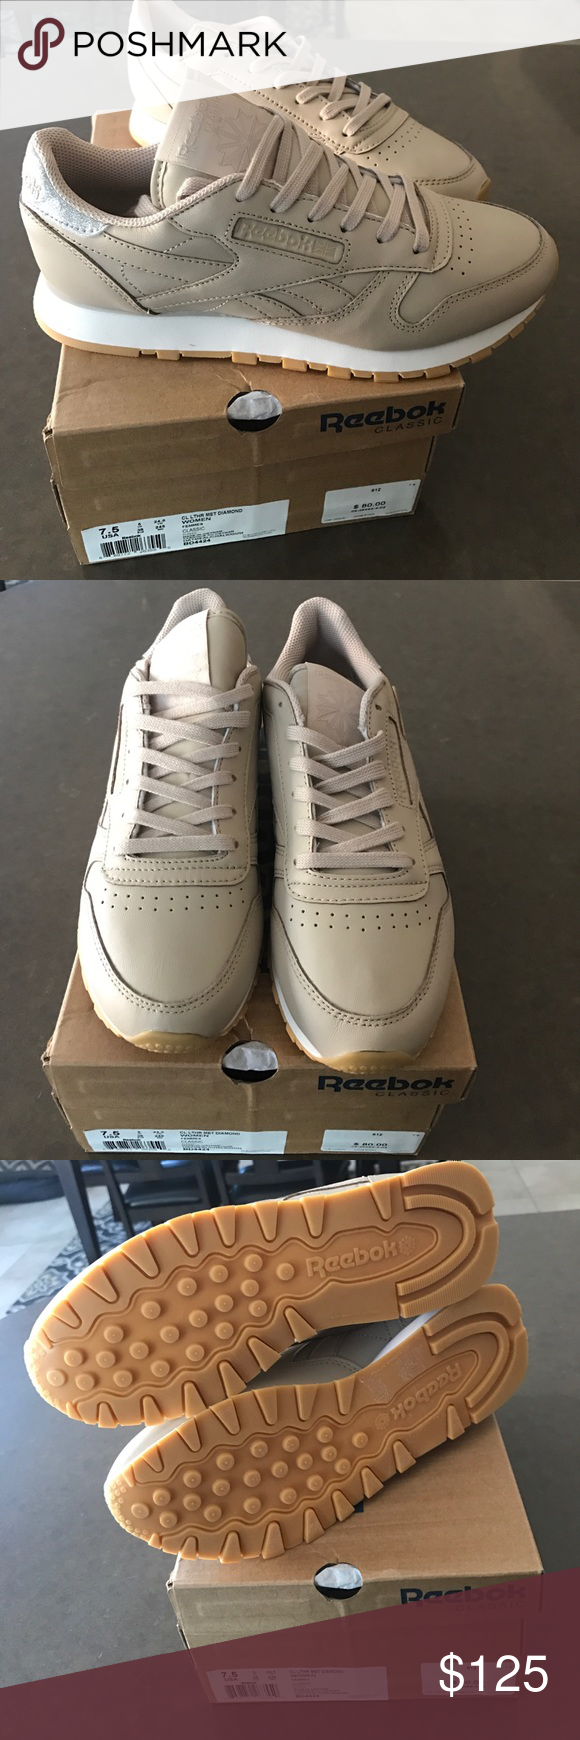 f46aace9d5cc07 Reebok Classic Leather Met Diamond Brand new